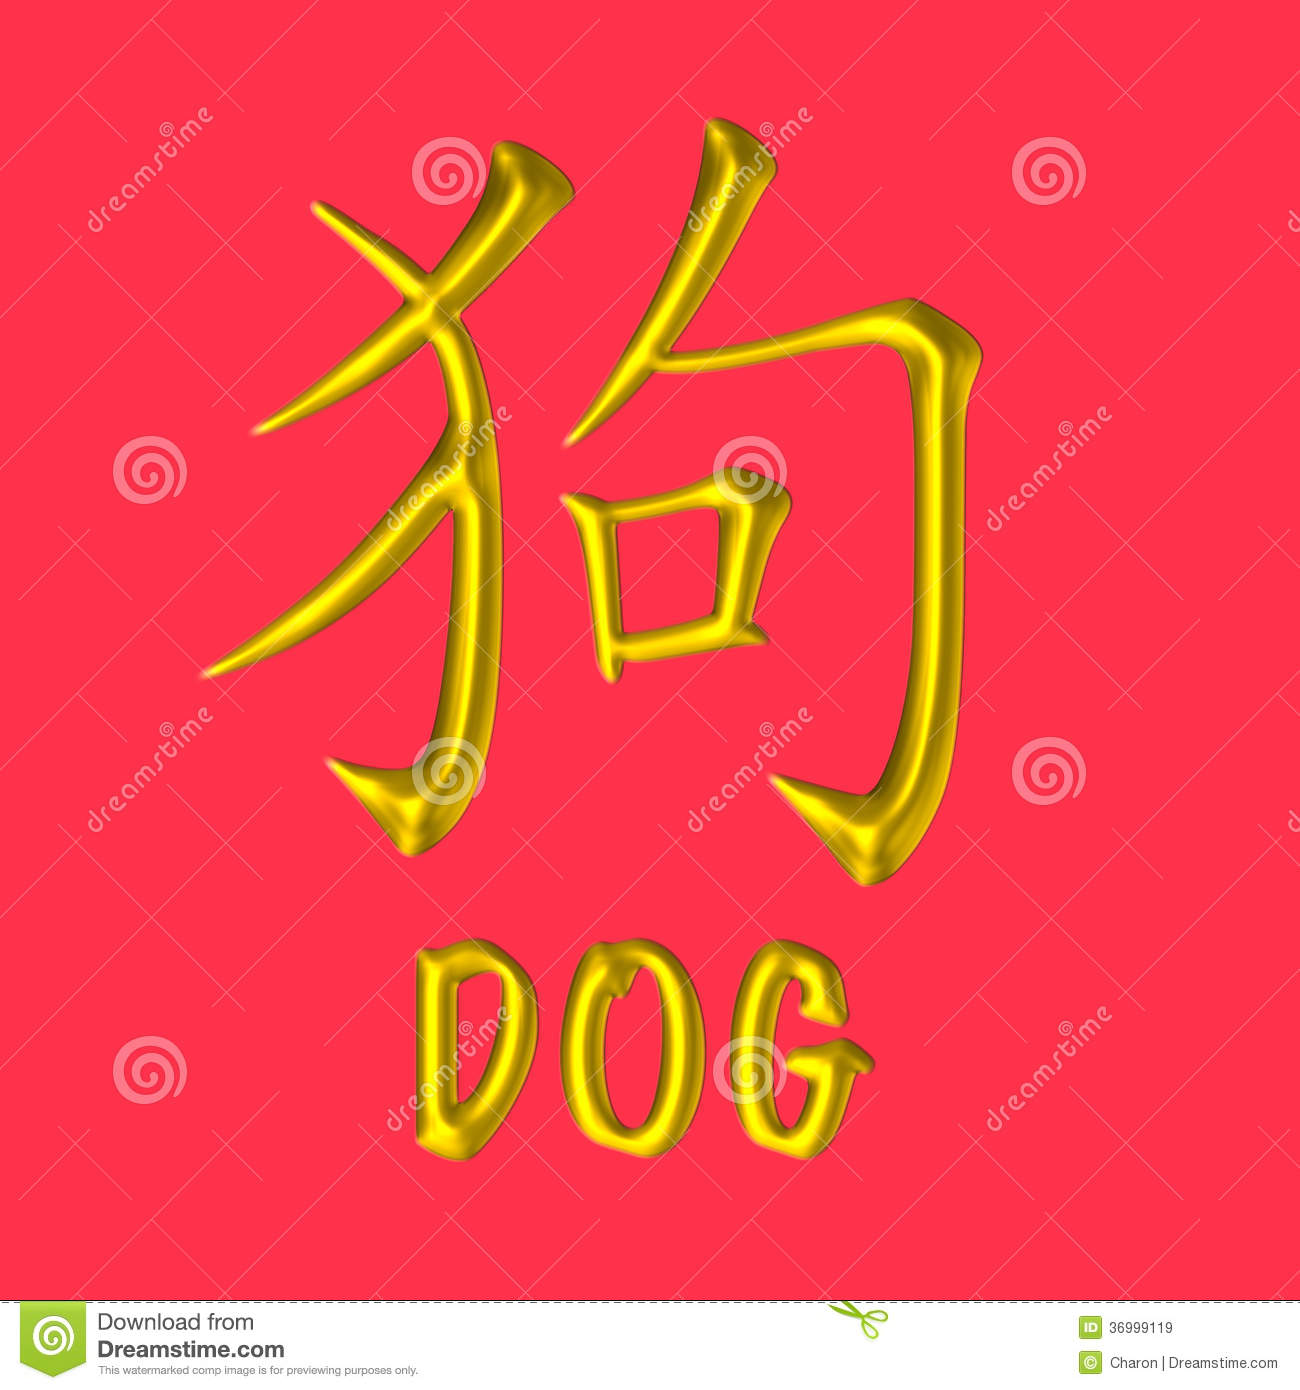 Dog Golden Chinese Zodiac Royalty Free Stock Images - Image: 36999119